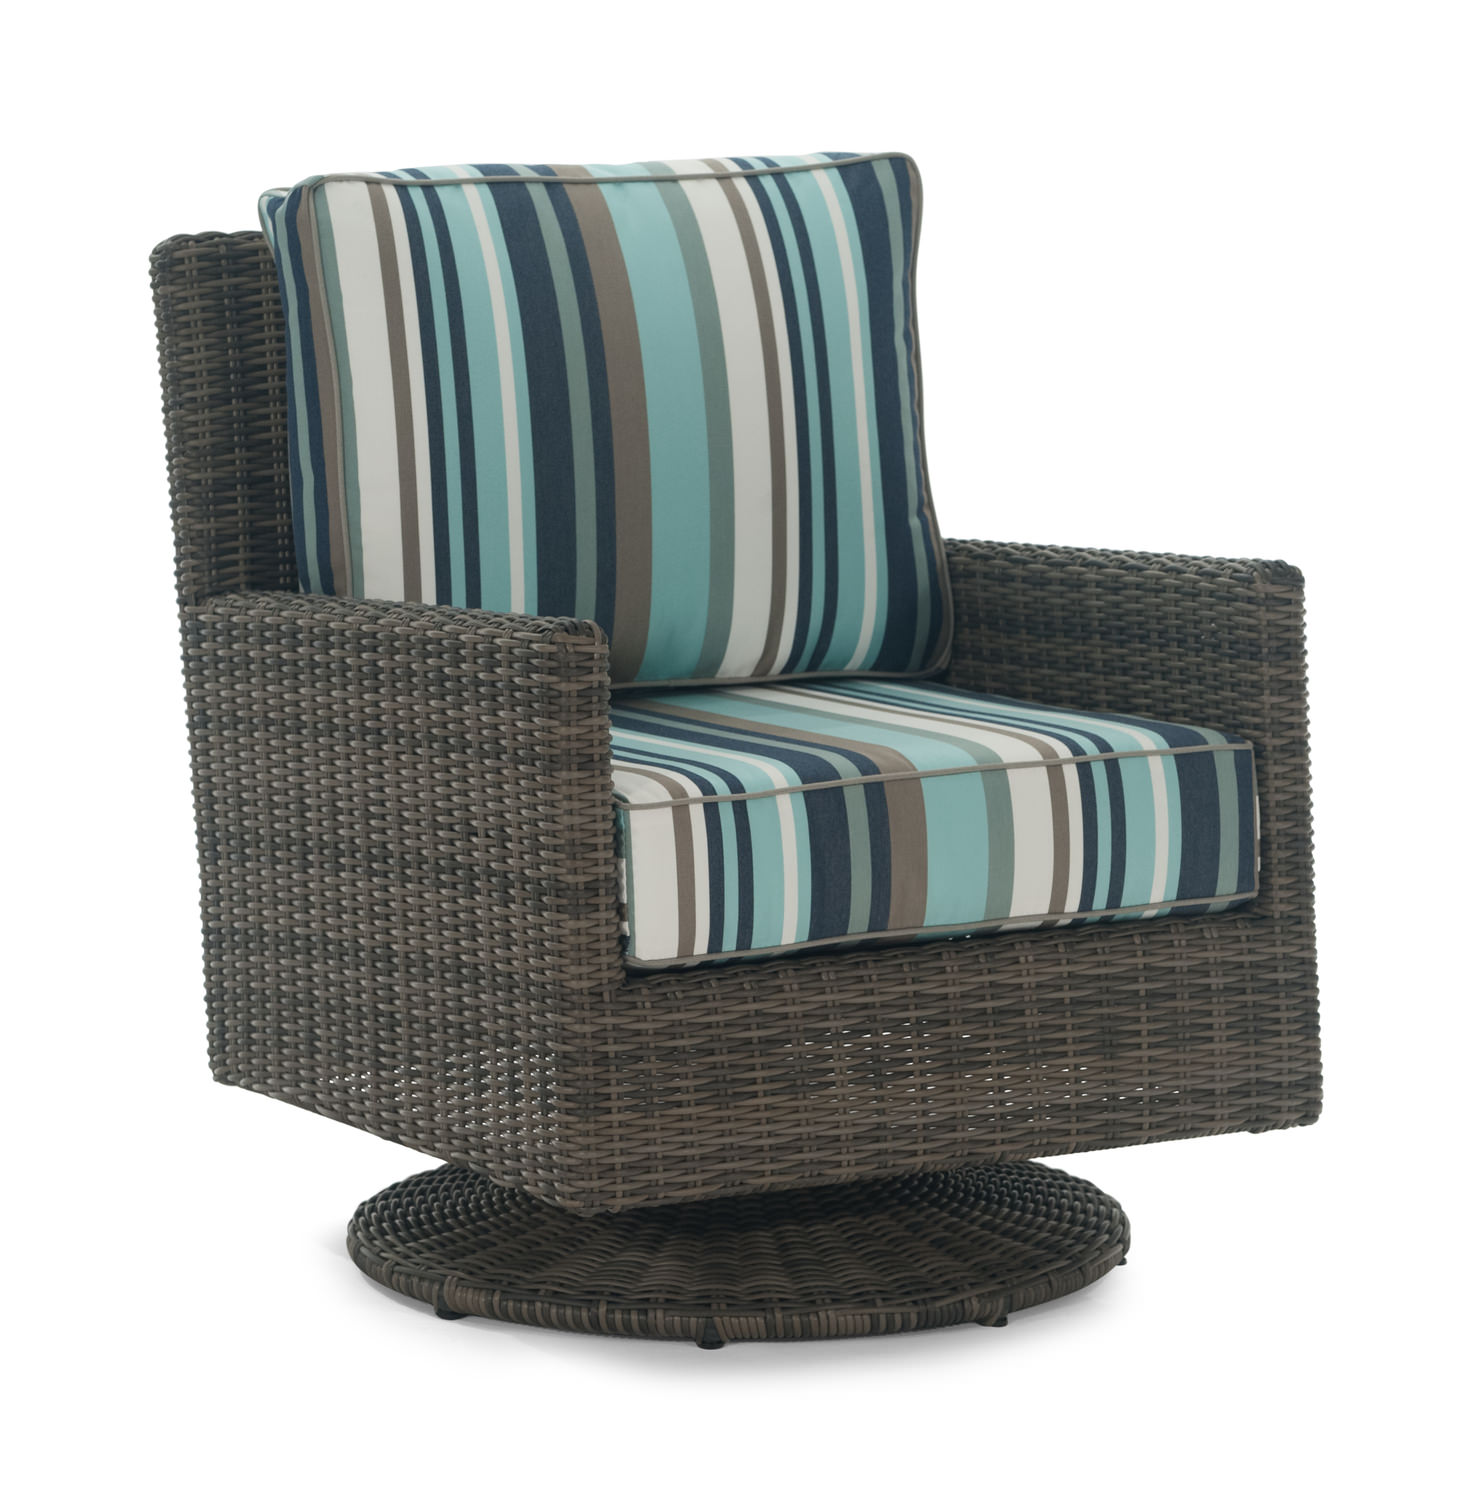 Brentwood Swivel Glider Wicker by North Cape International